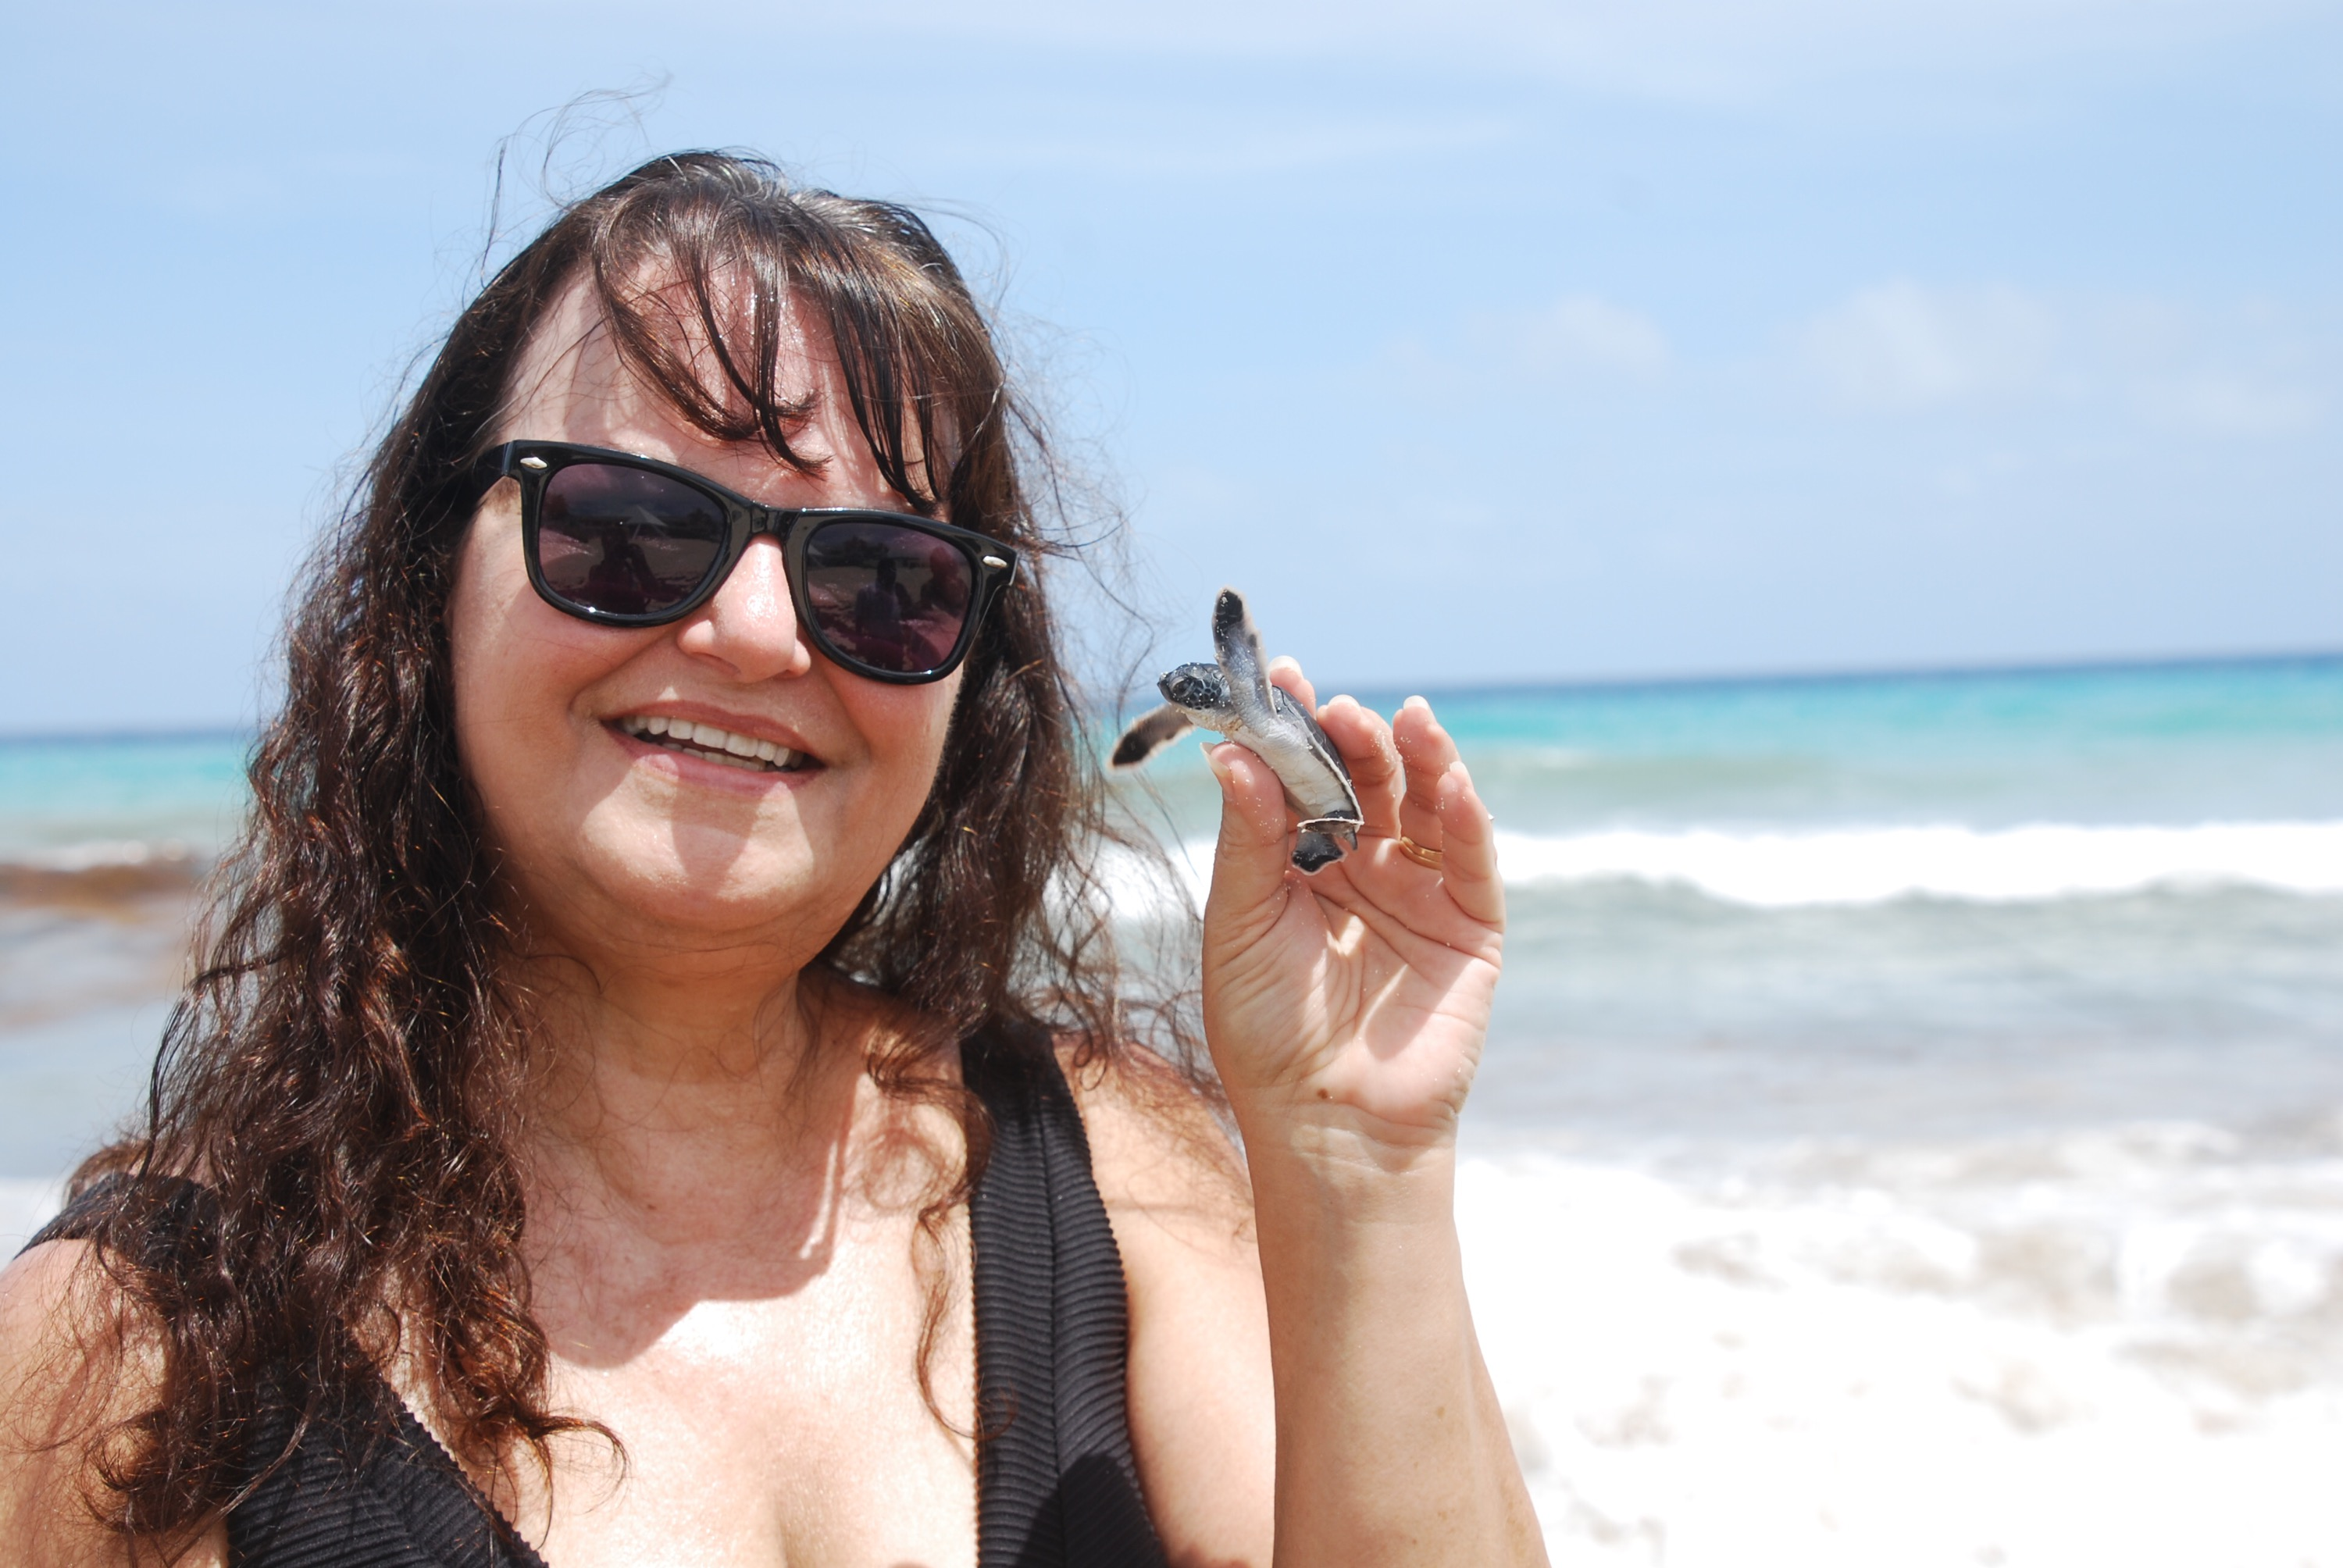 Thats me holding a newly hatched sea turtle found on the beach in Cancun! what a wonderful experience! Photo copyright Valerie Duty Citrano